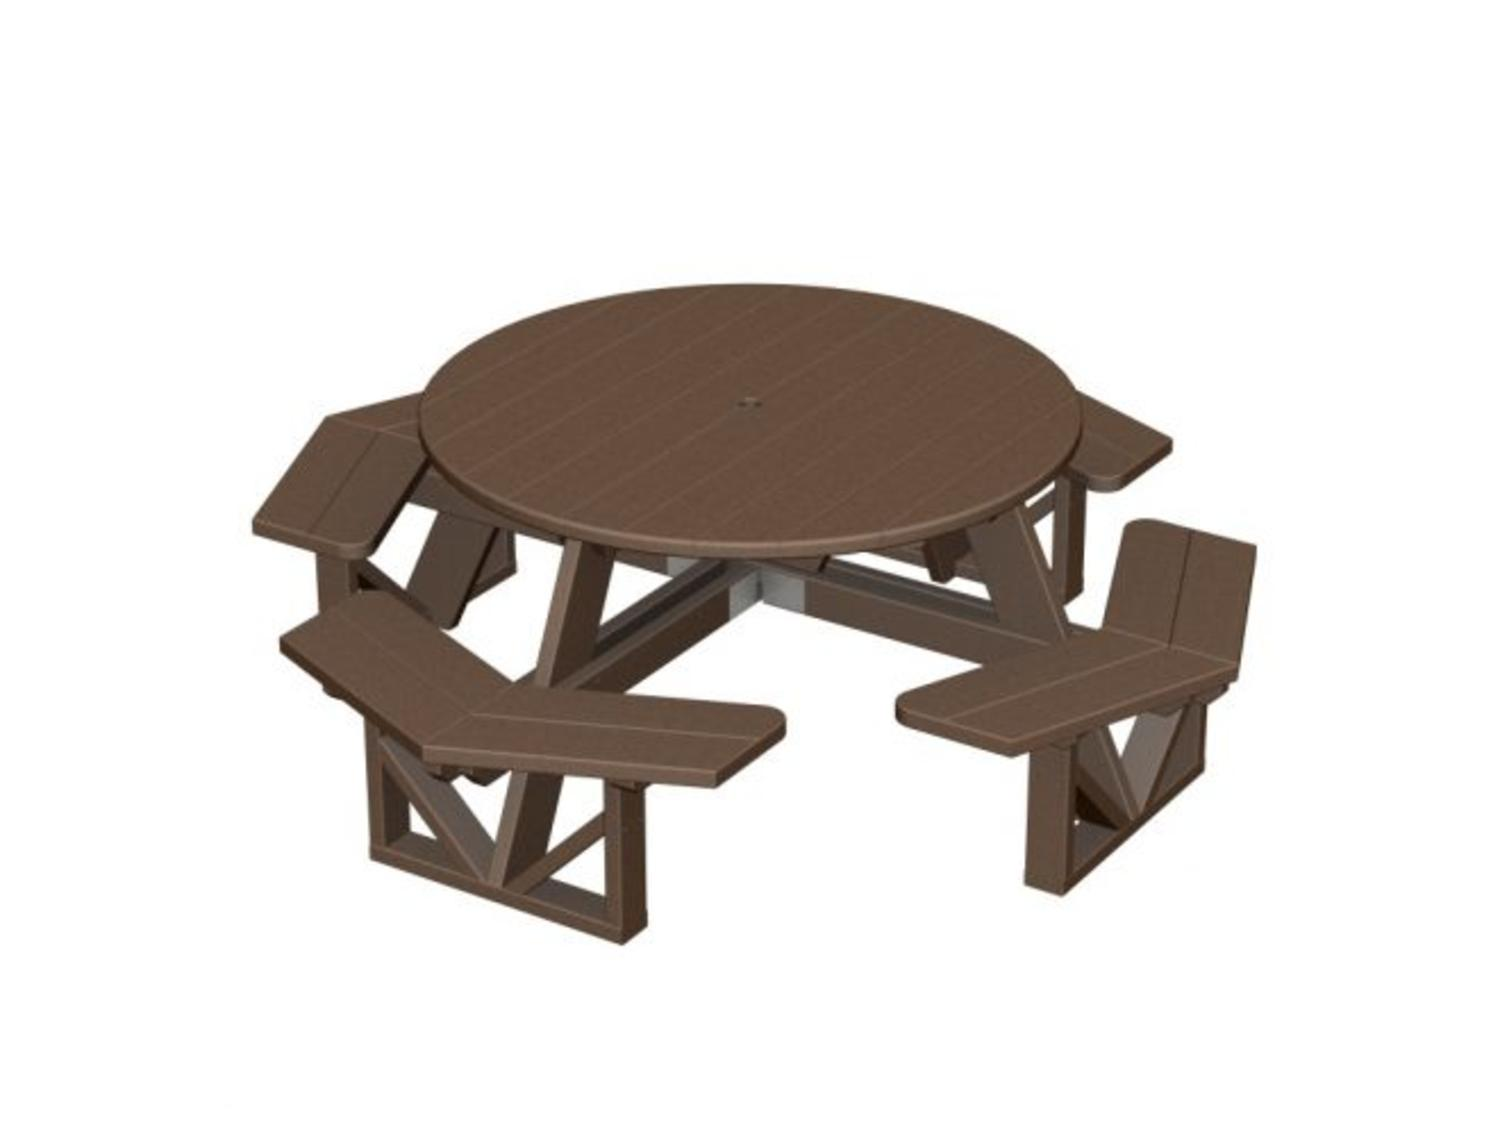 Recycled Park Lane Outdoor Patio Octagon Picnic Table Chocolate Brown by Eco-Friendly Furnishings